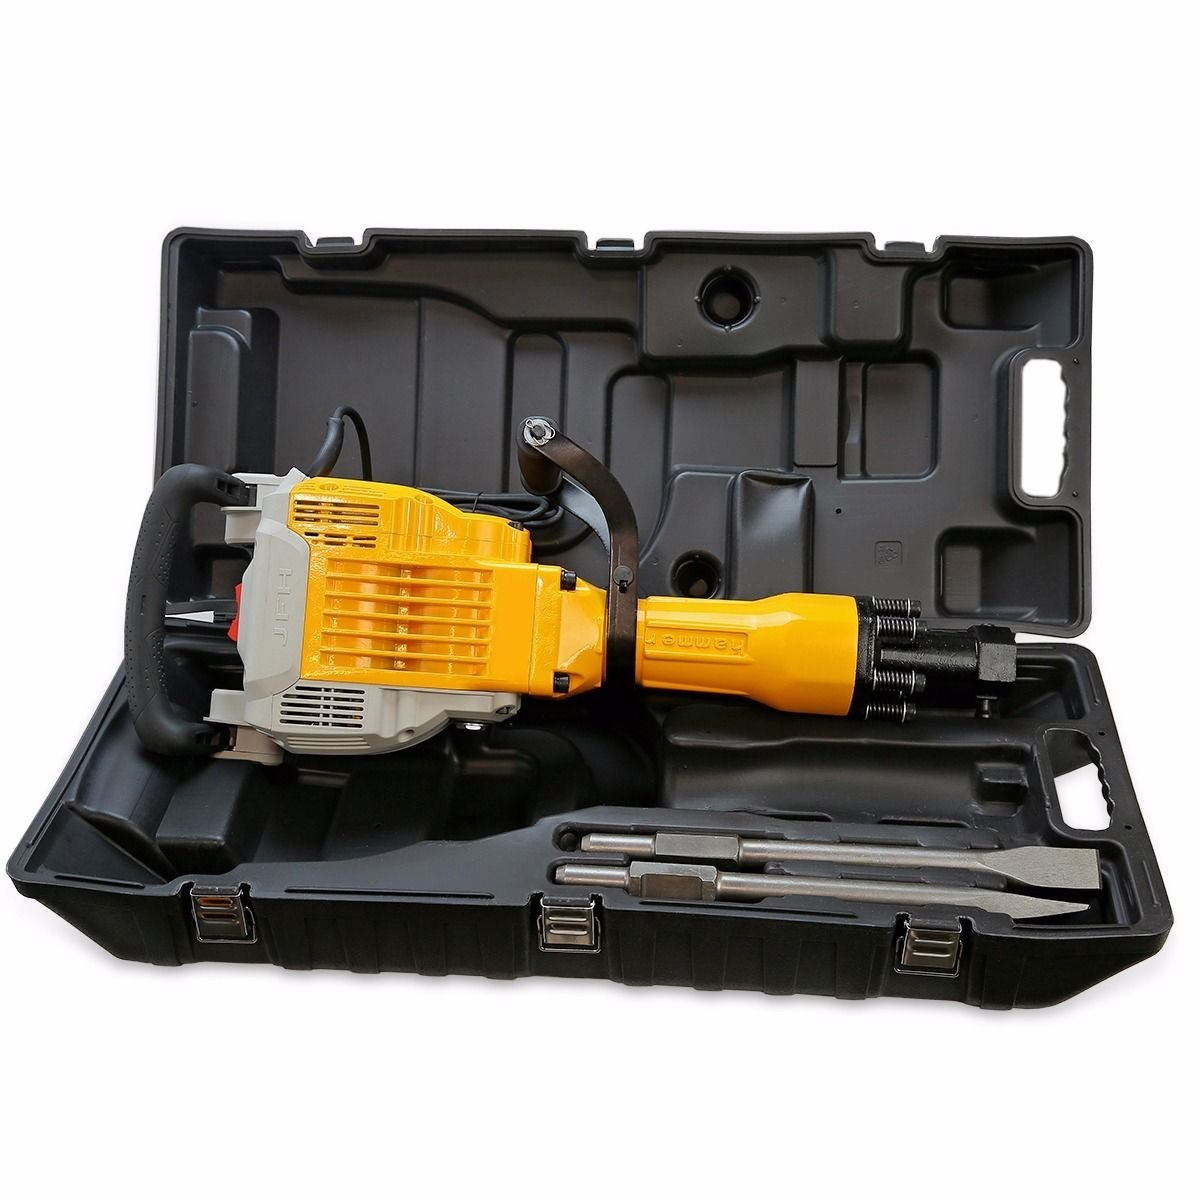 GHP 3600W Electric Demolition Jack Hammer Concrete Breaker with Flat & Point Chisel by Globe House Products